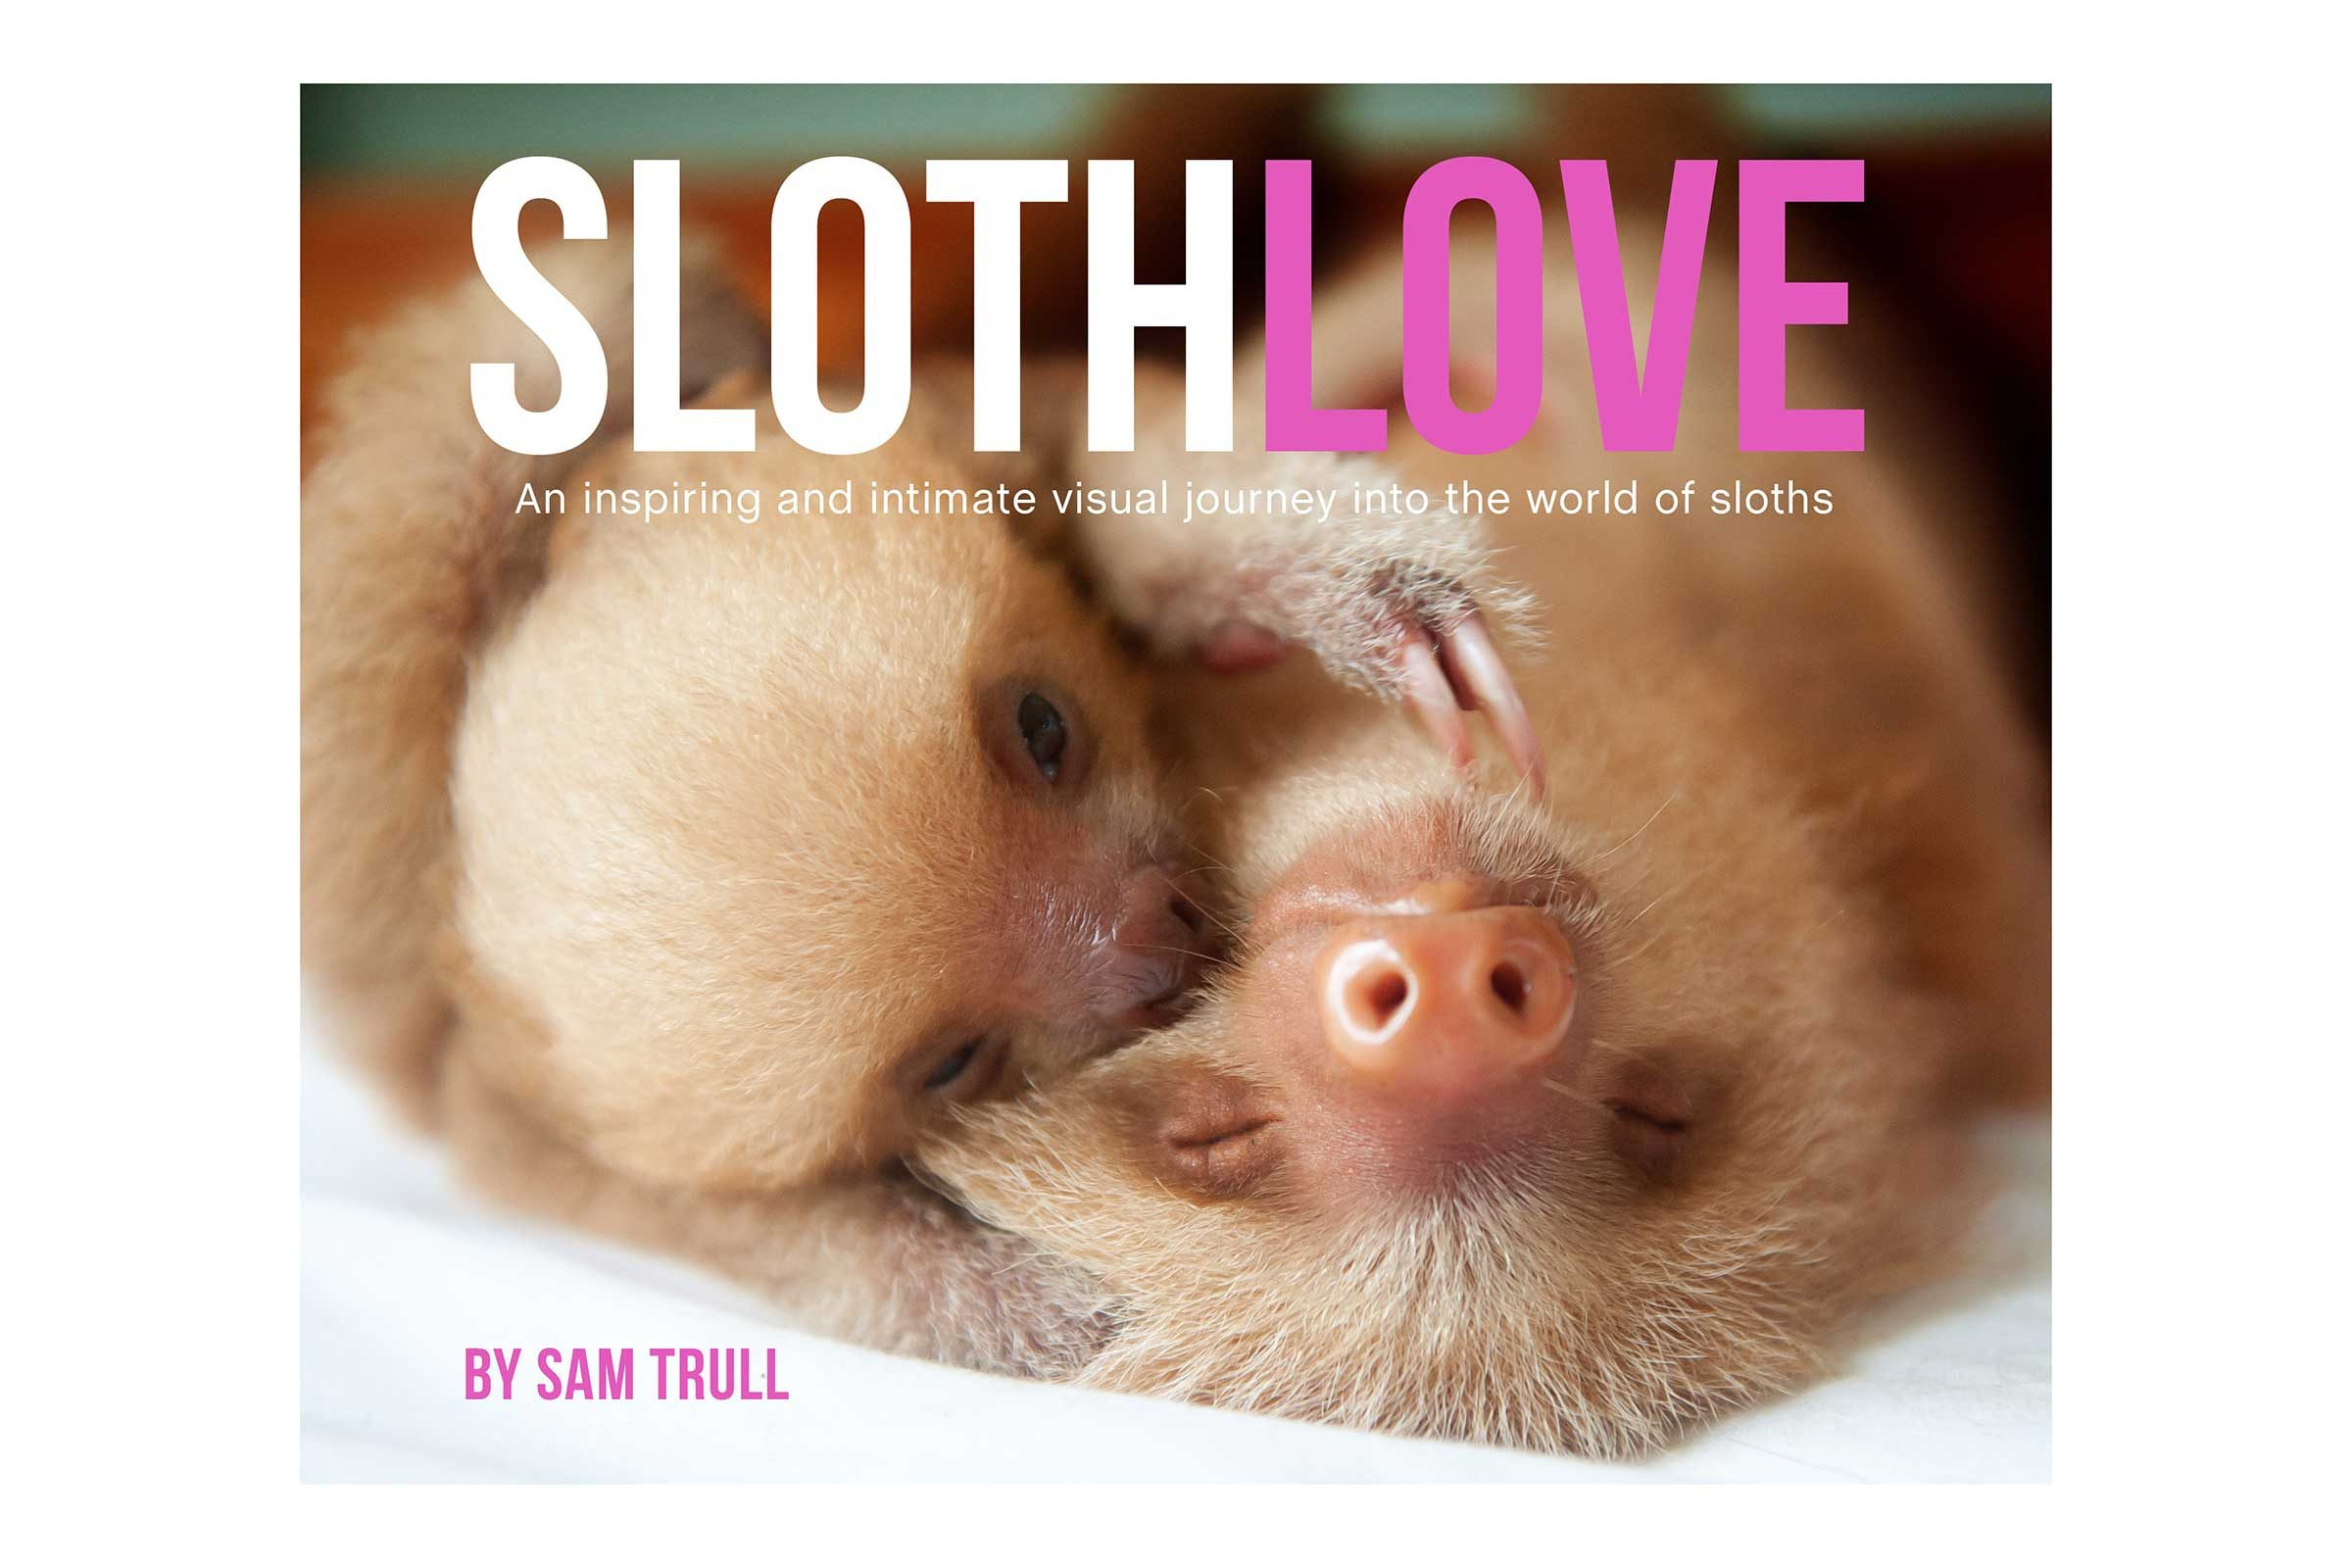 See more pictures of cute sloths